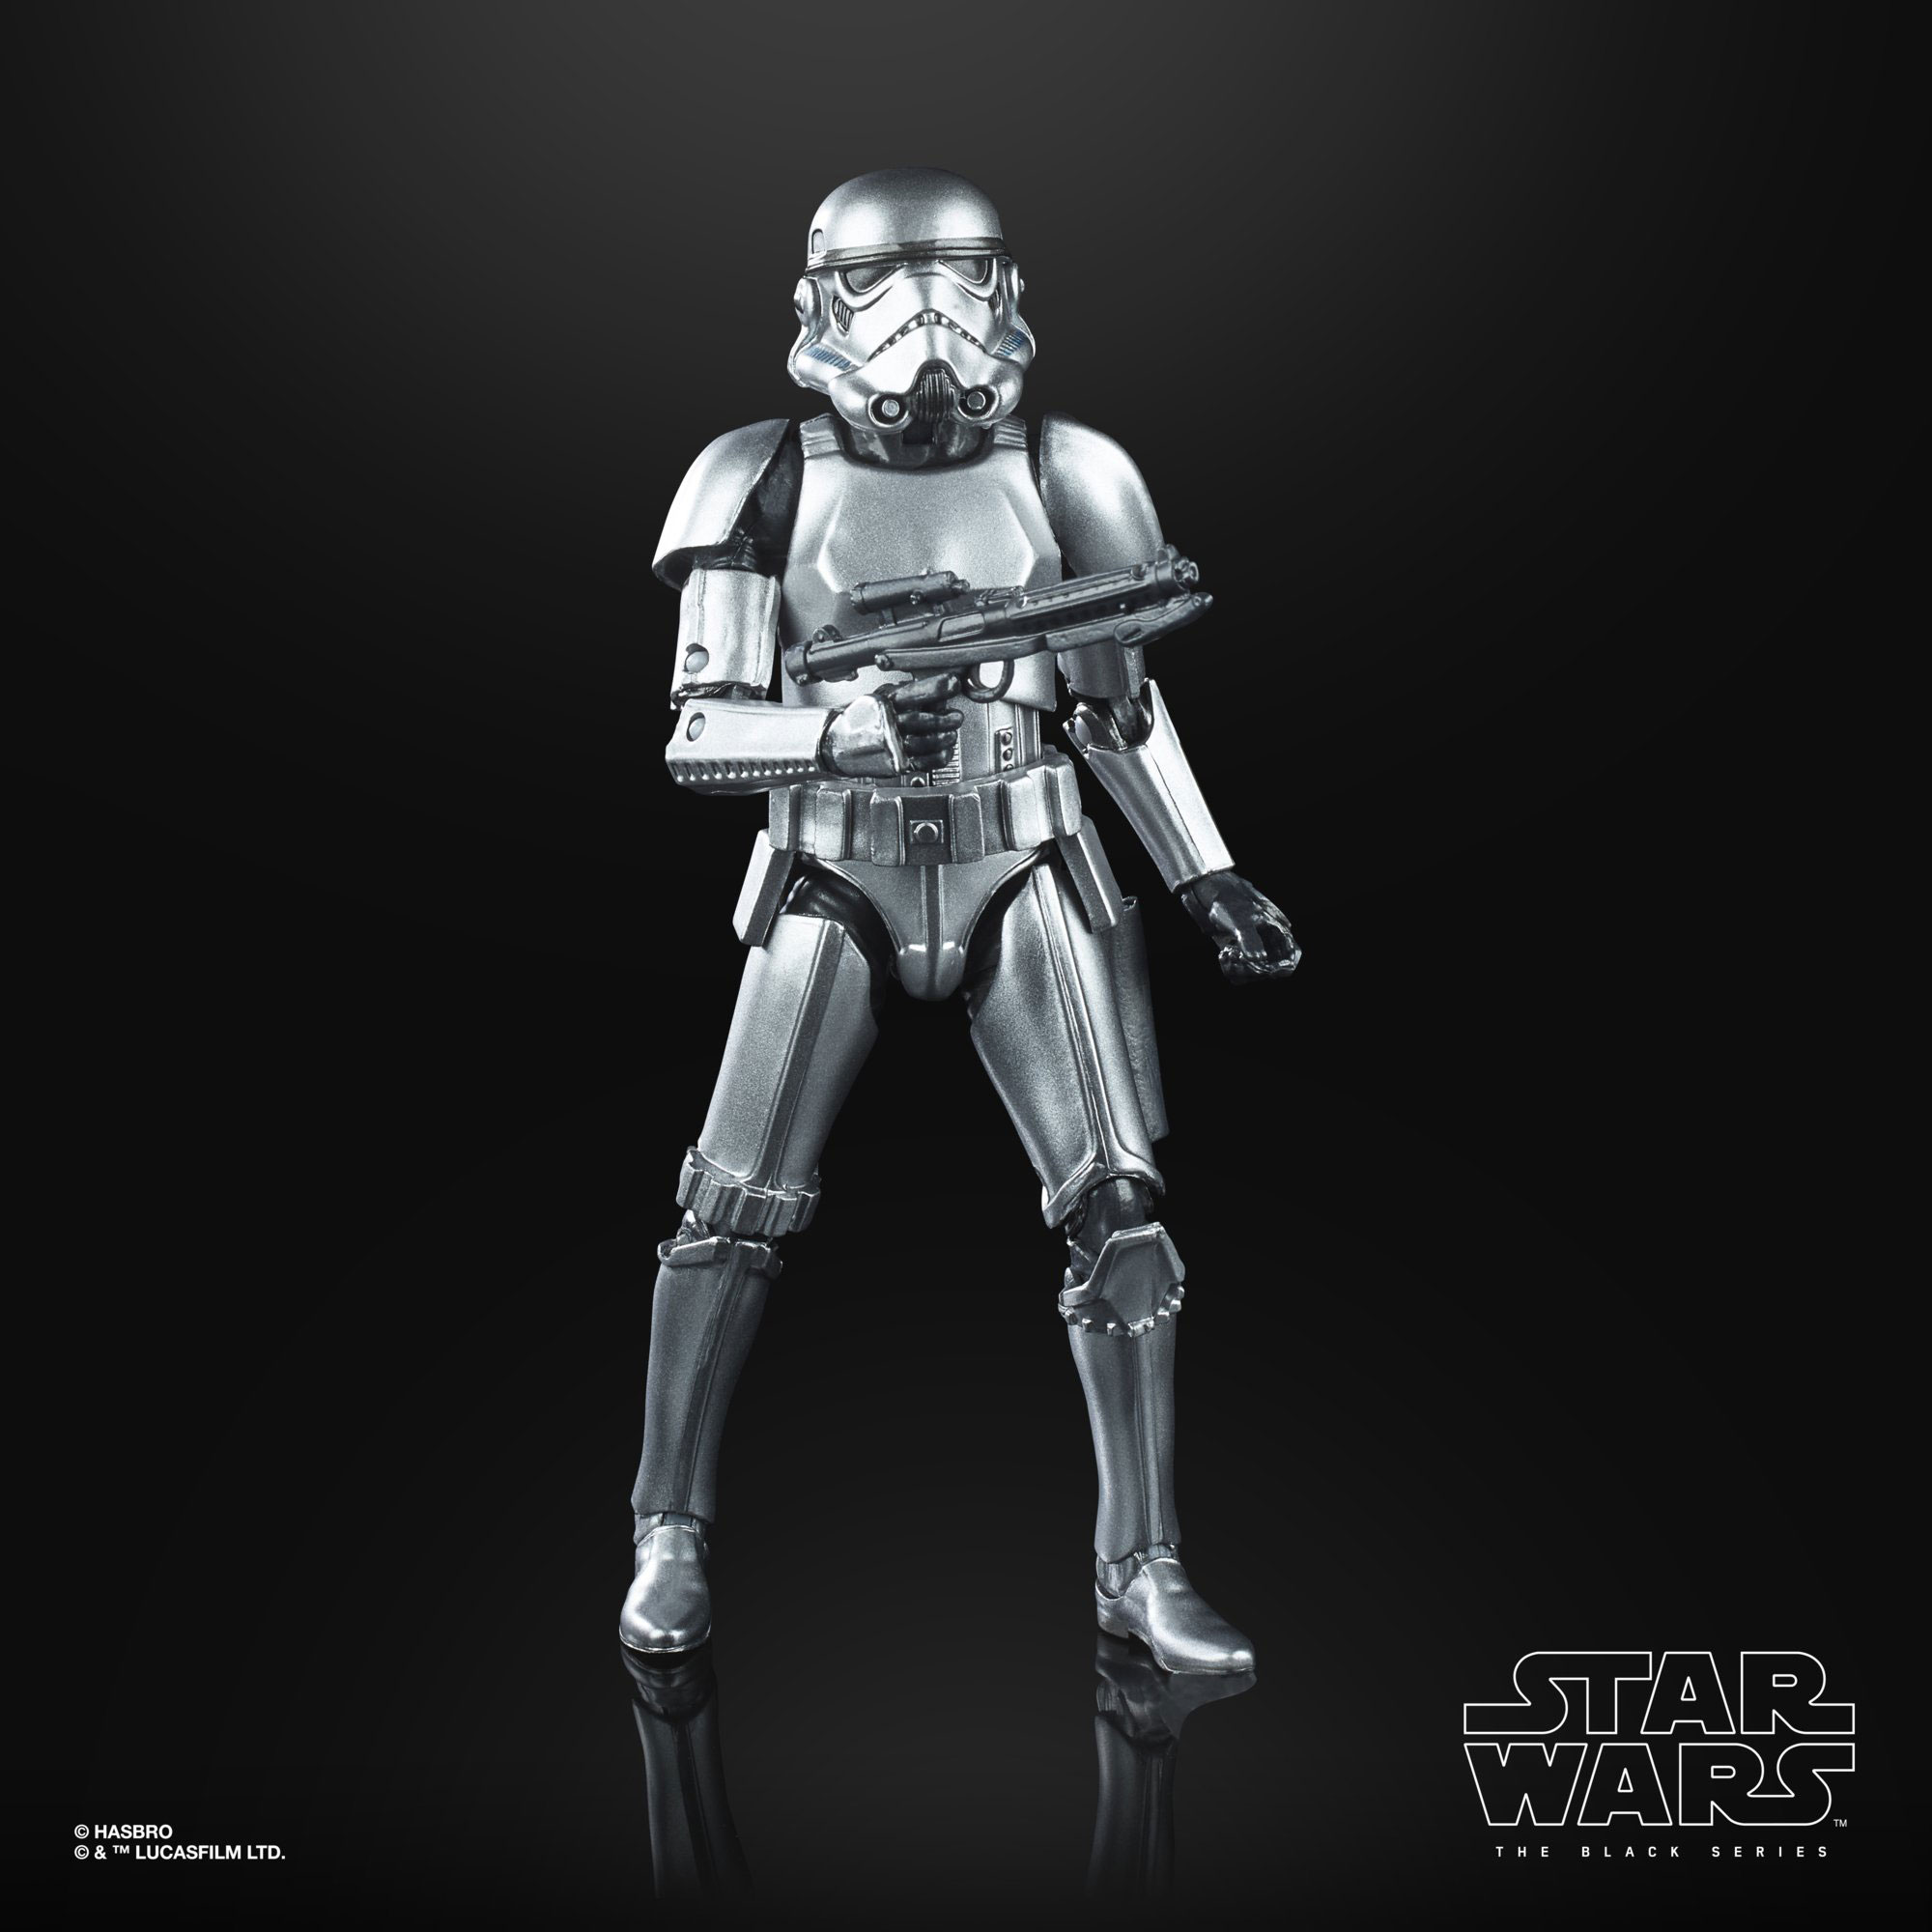 star-wars-black-series-carbonized-stormtrooper-action-figure-1